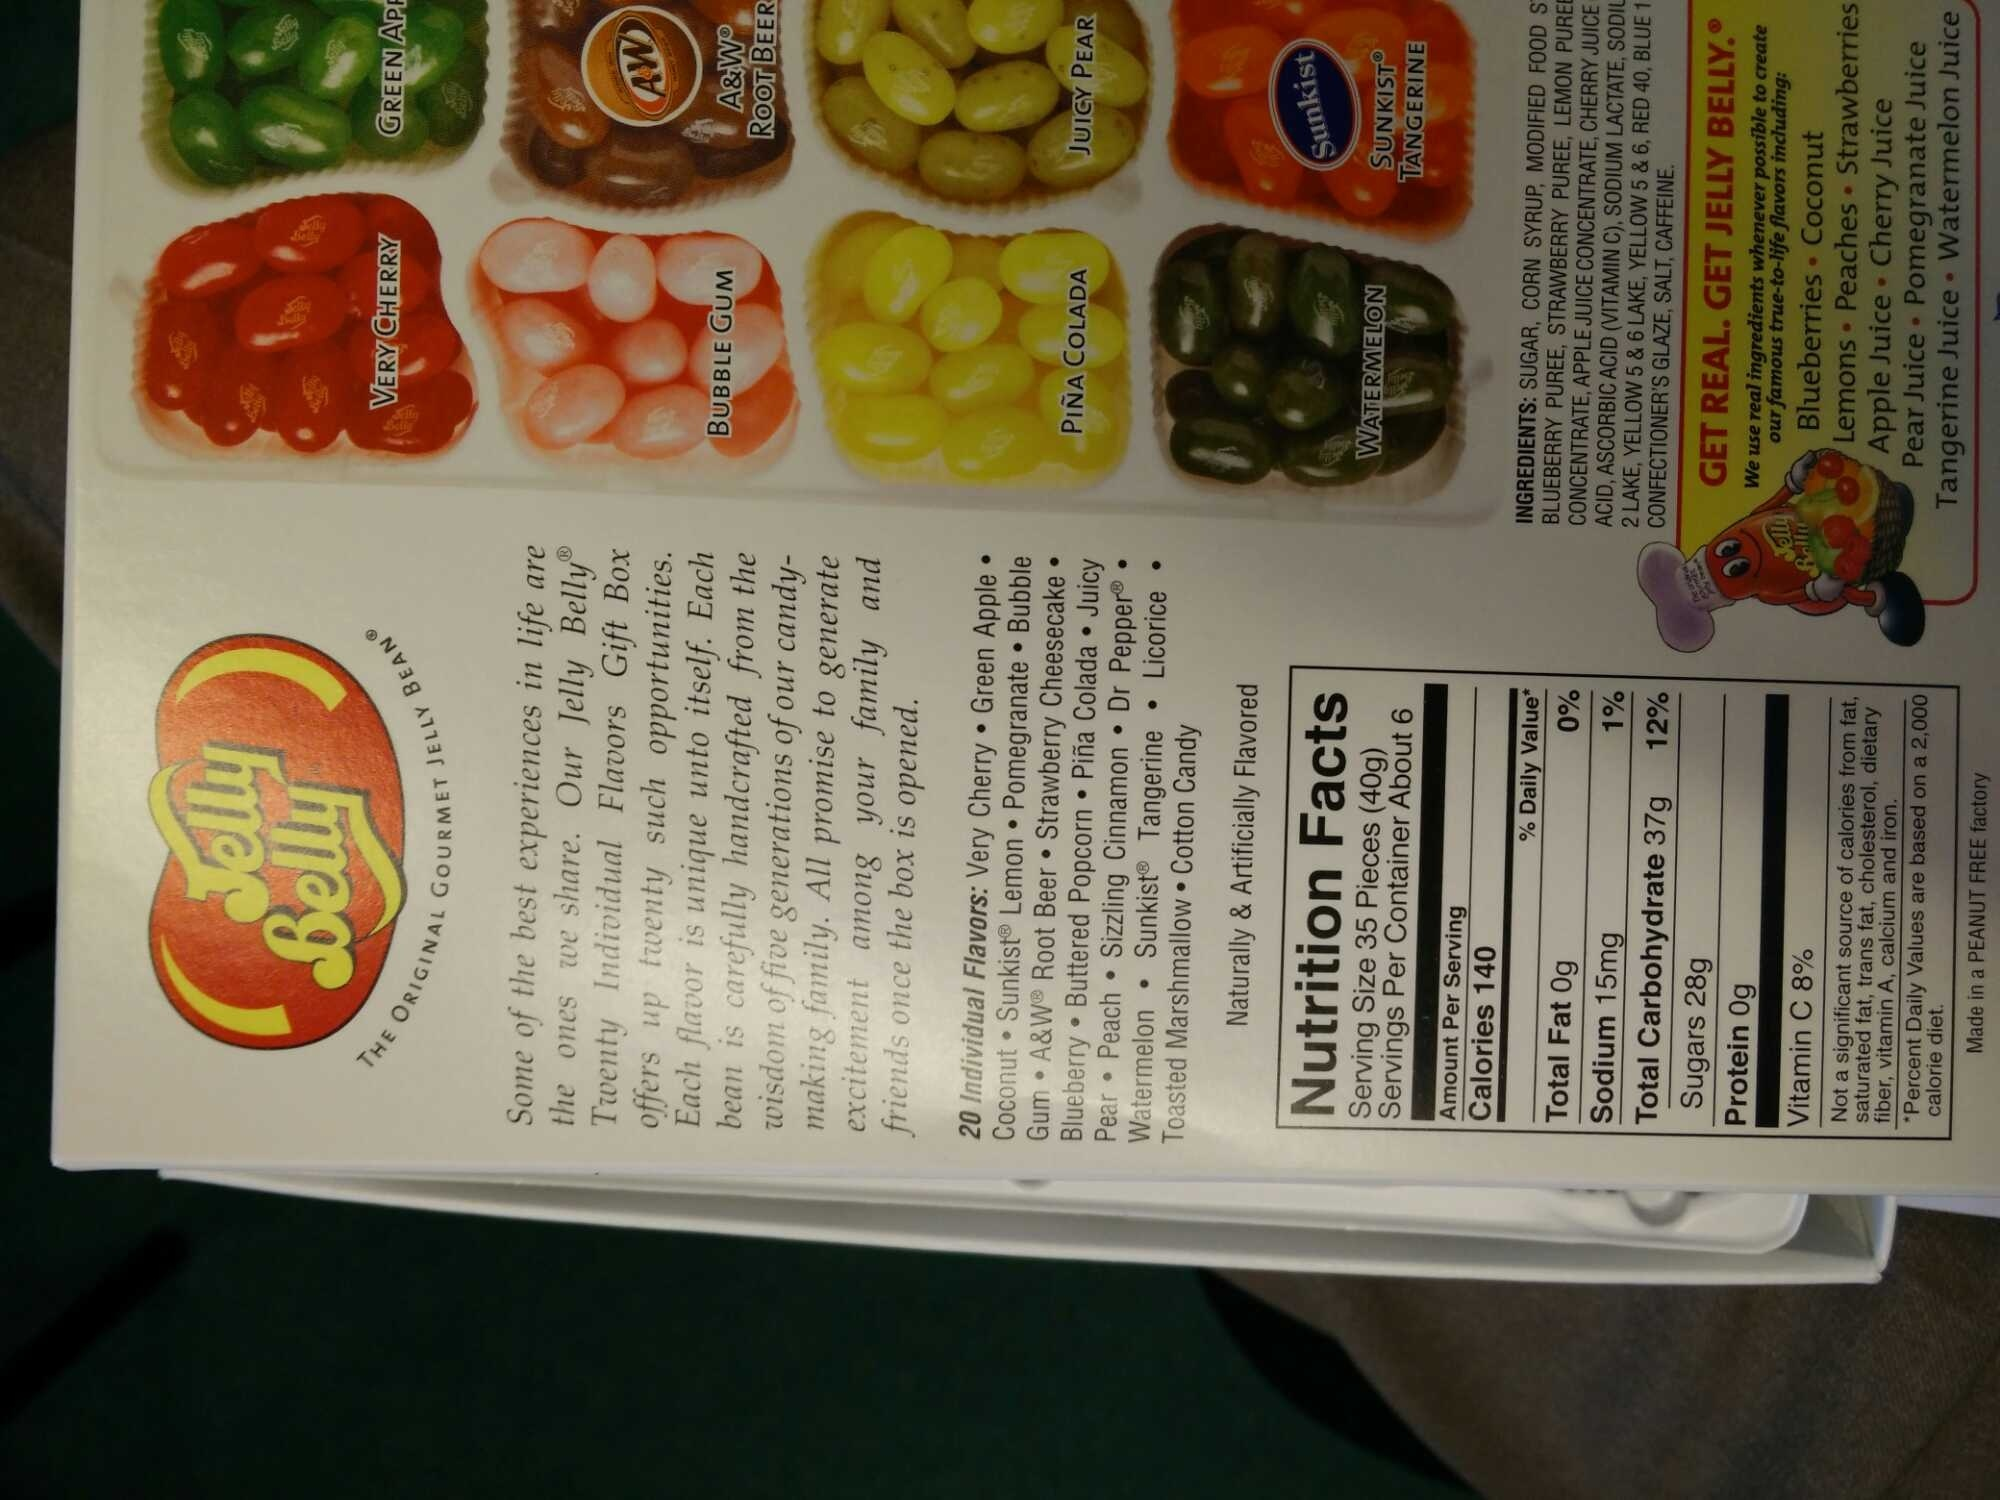 Jelly beans - Product